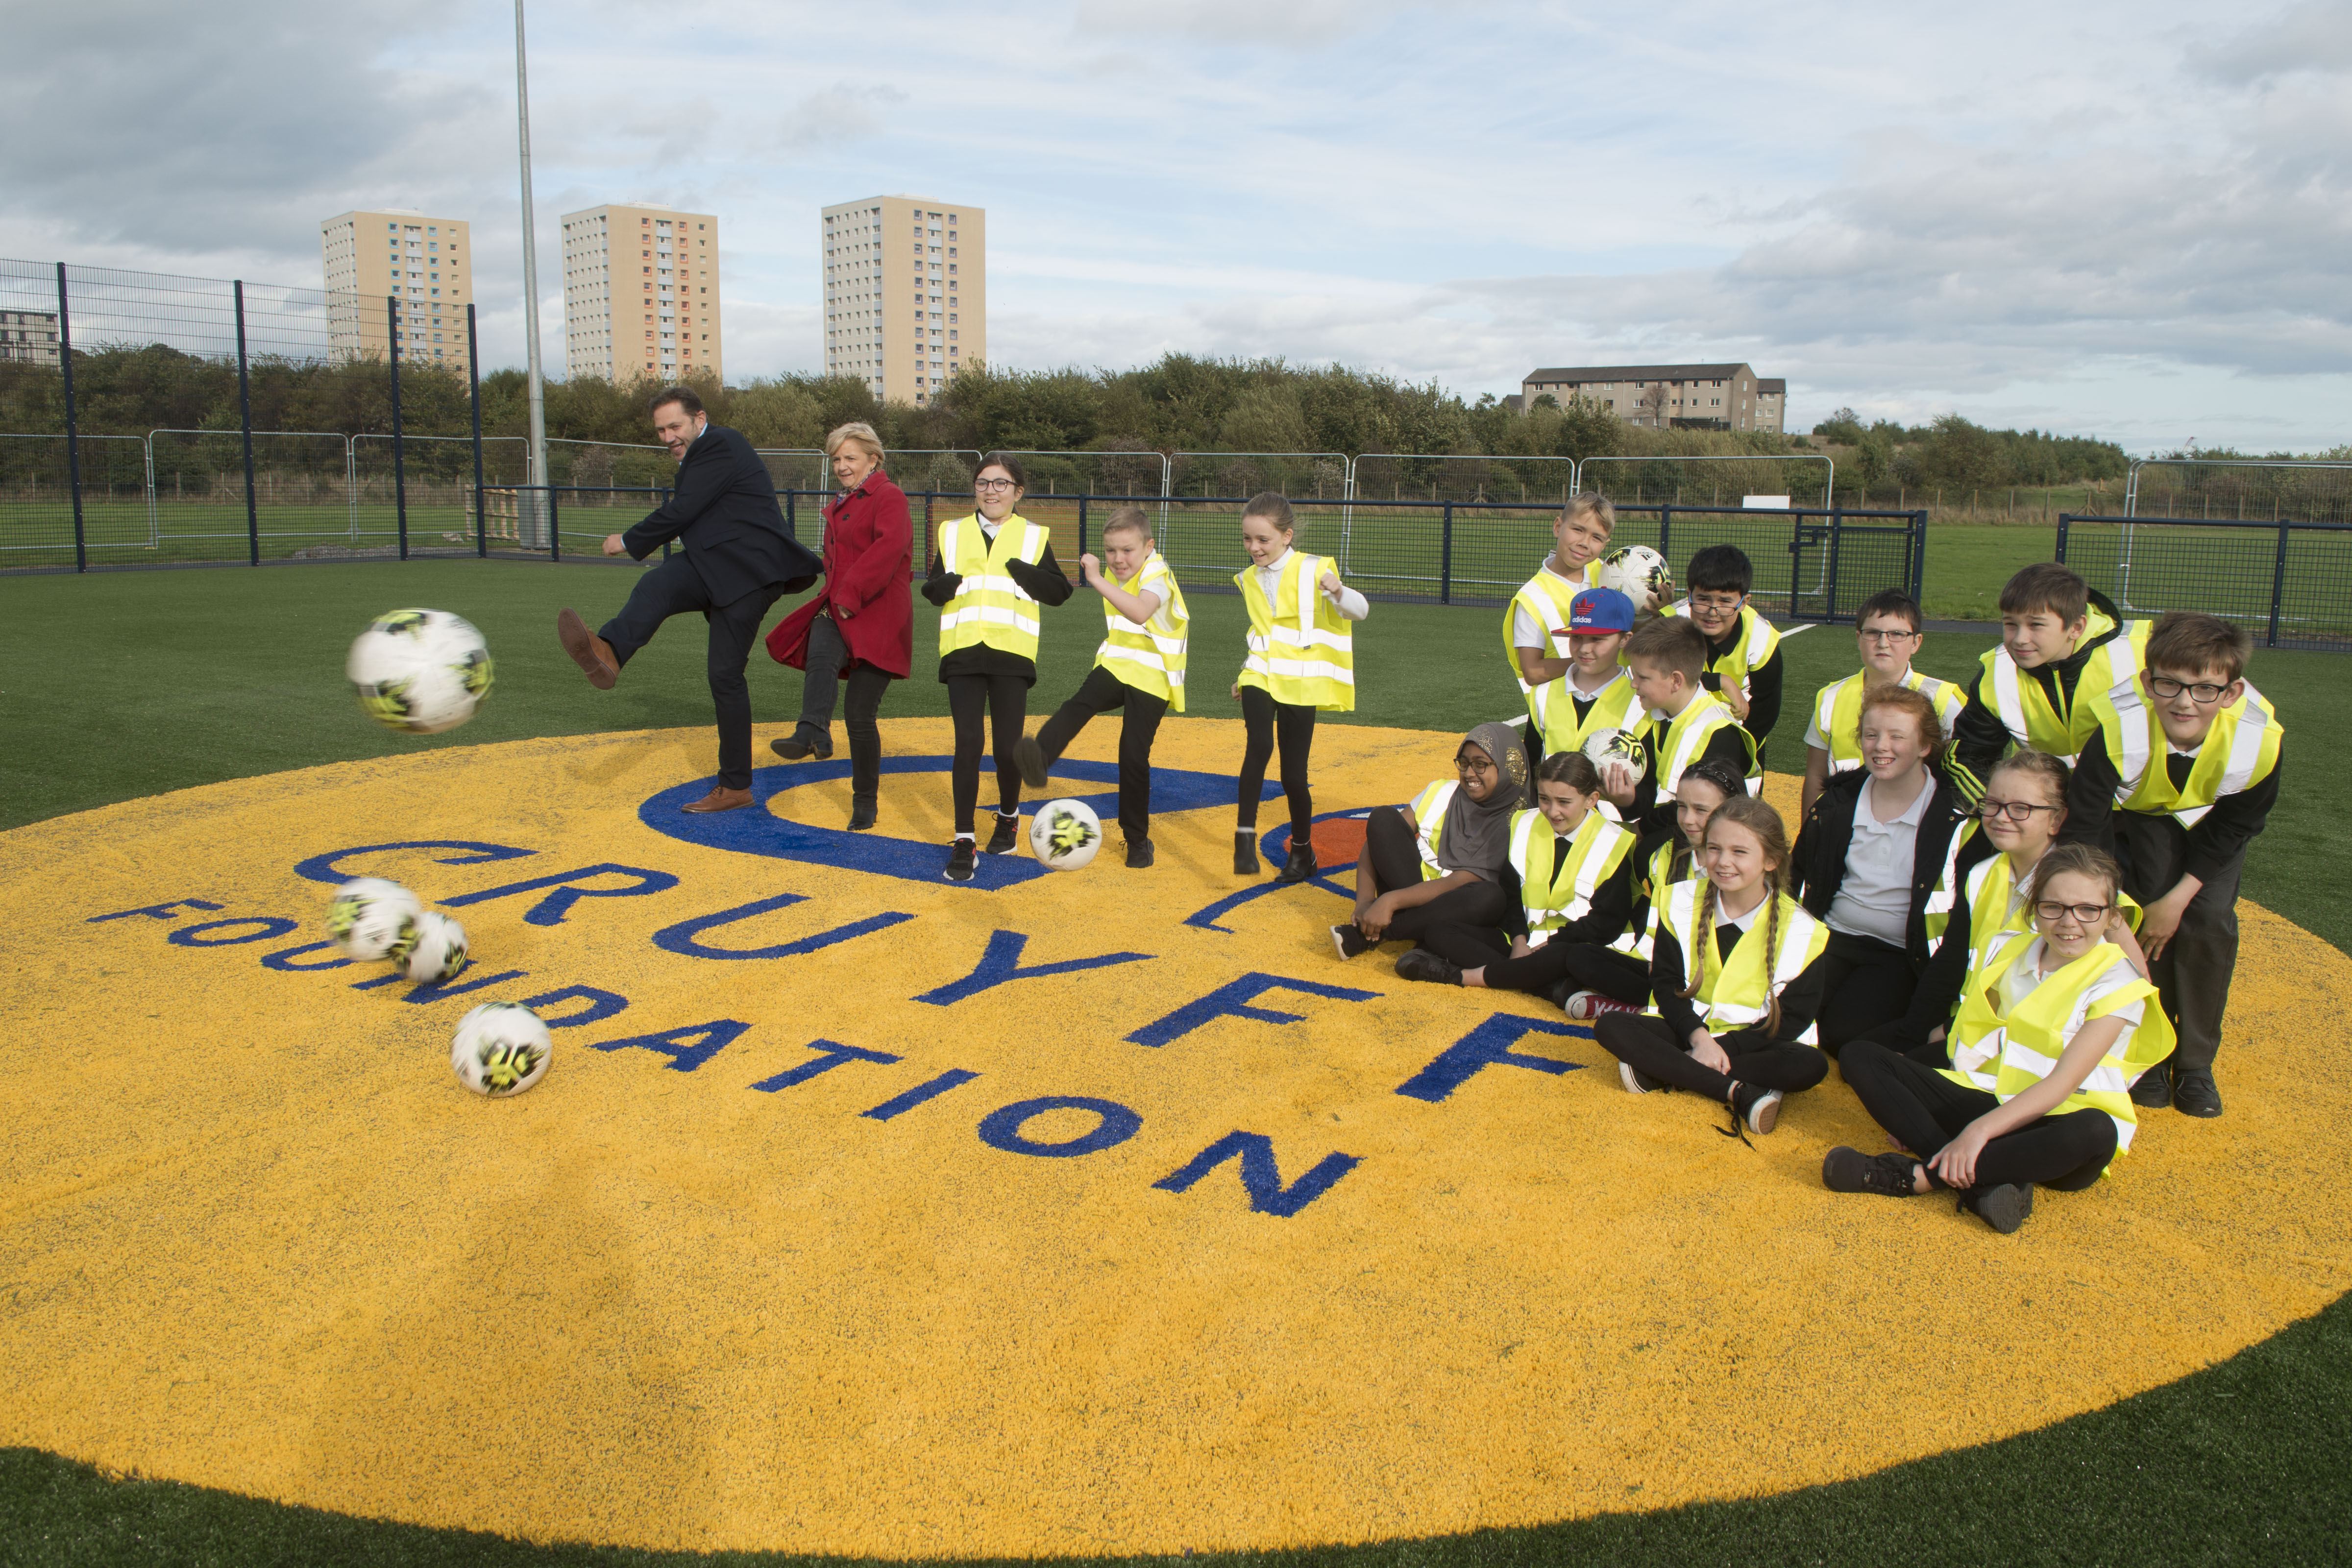 Aberdeen City Council Co-Leaders Cllr Jenny Laing and Cllr Douglas Lumsden join pupils of Tullos Primary School in trying out the new Cruyff Court Neale Cooper.